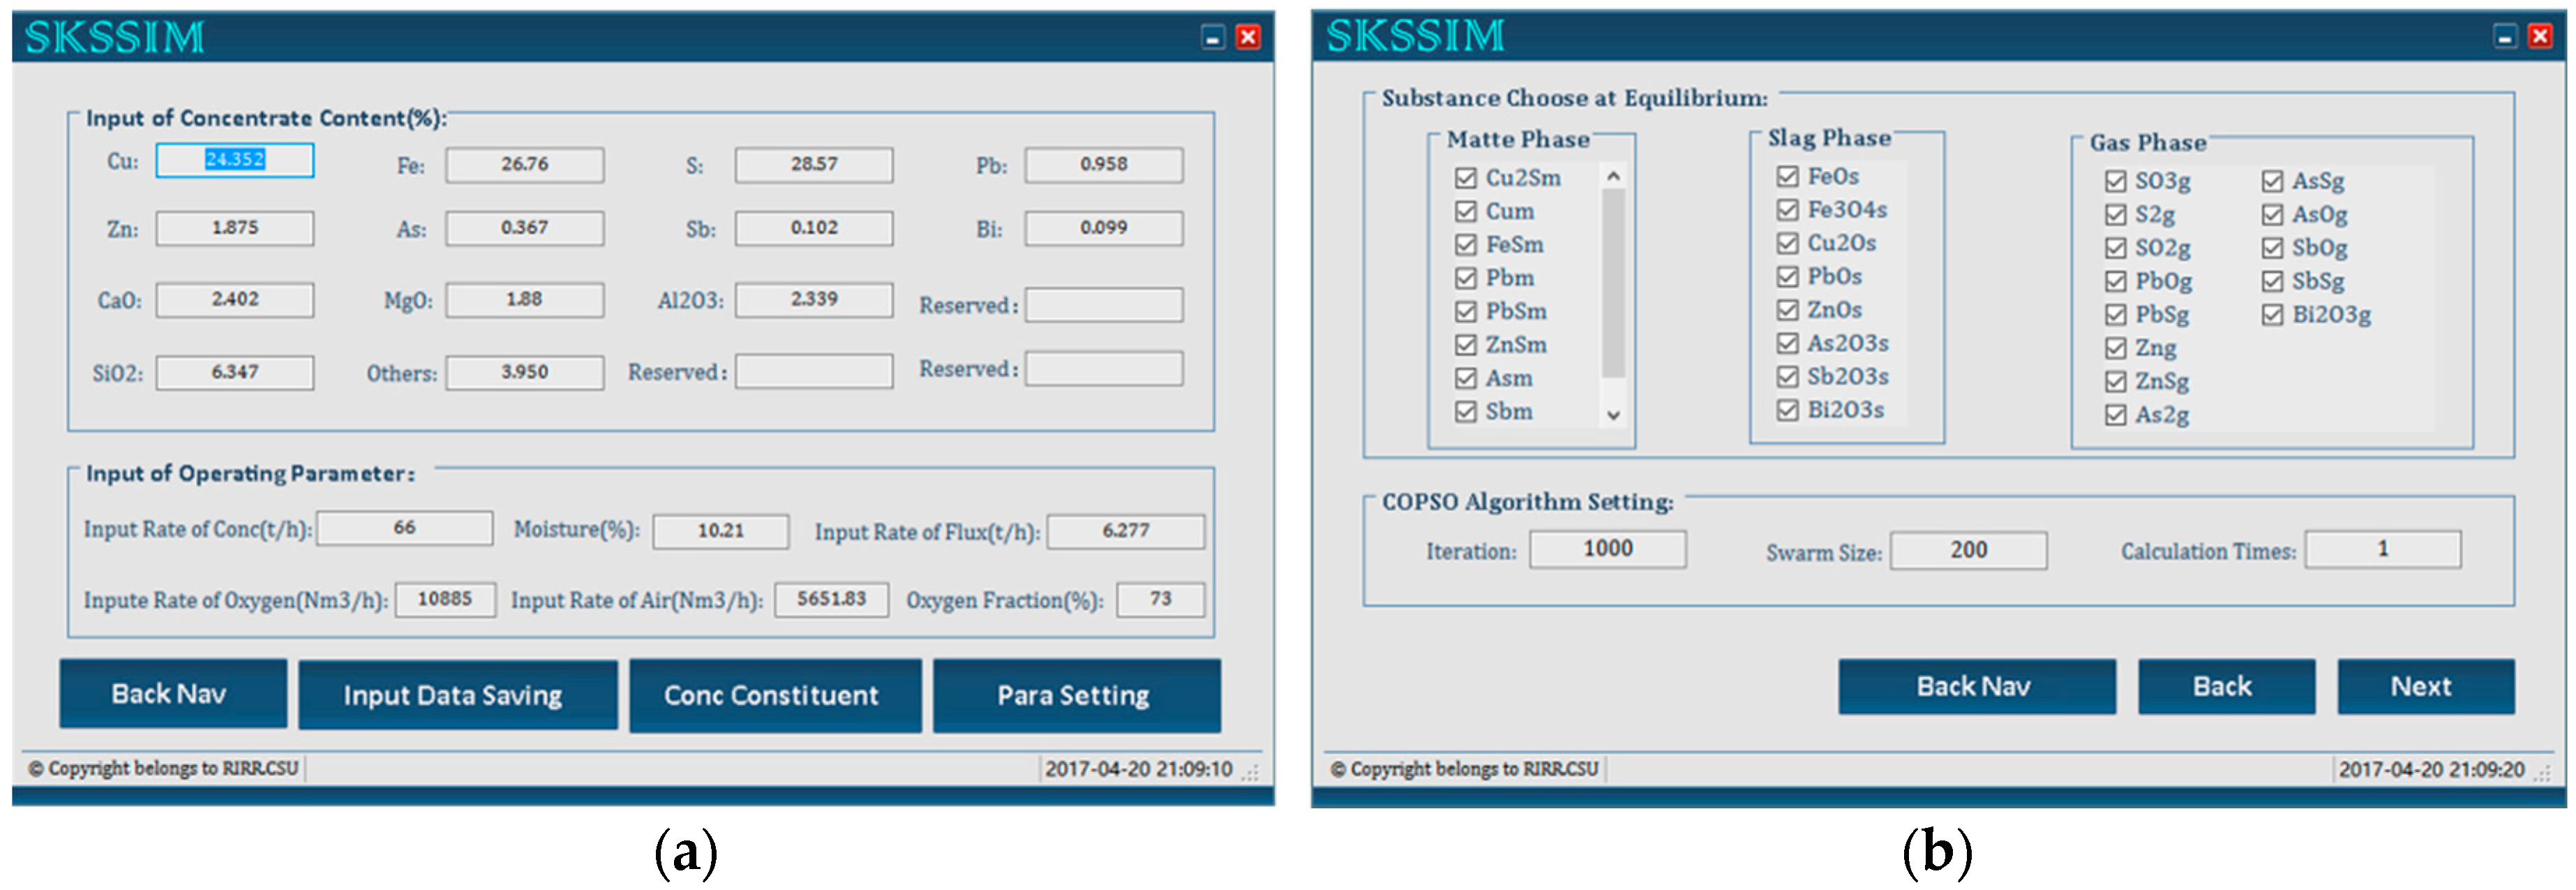 Metals | Free Full-Text | Development and Application of SKSSIM